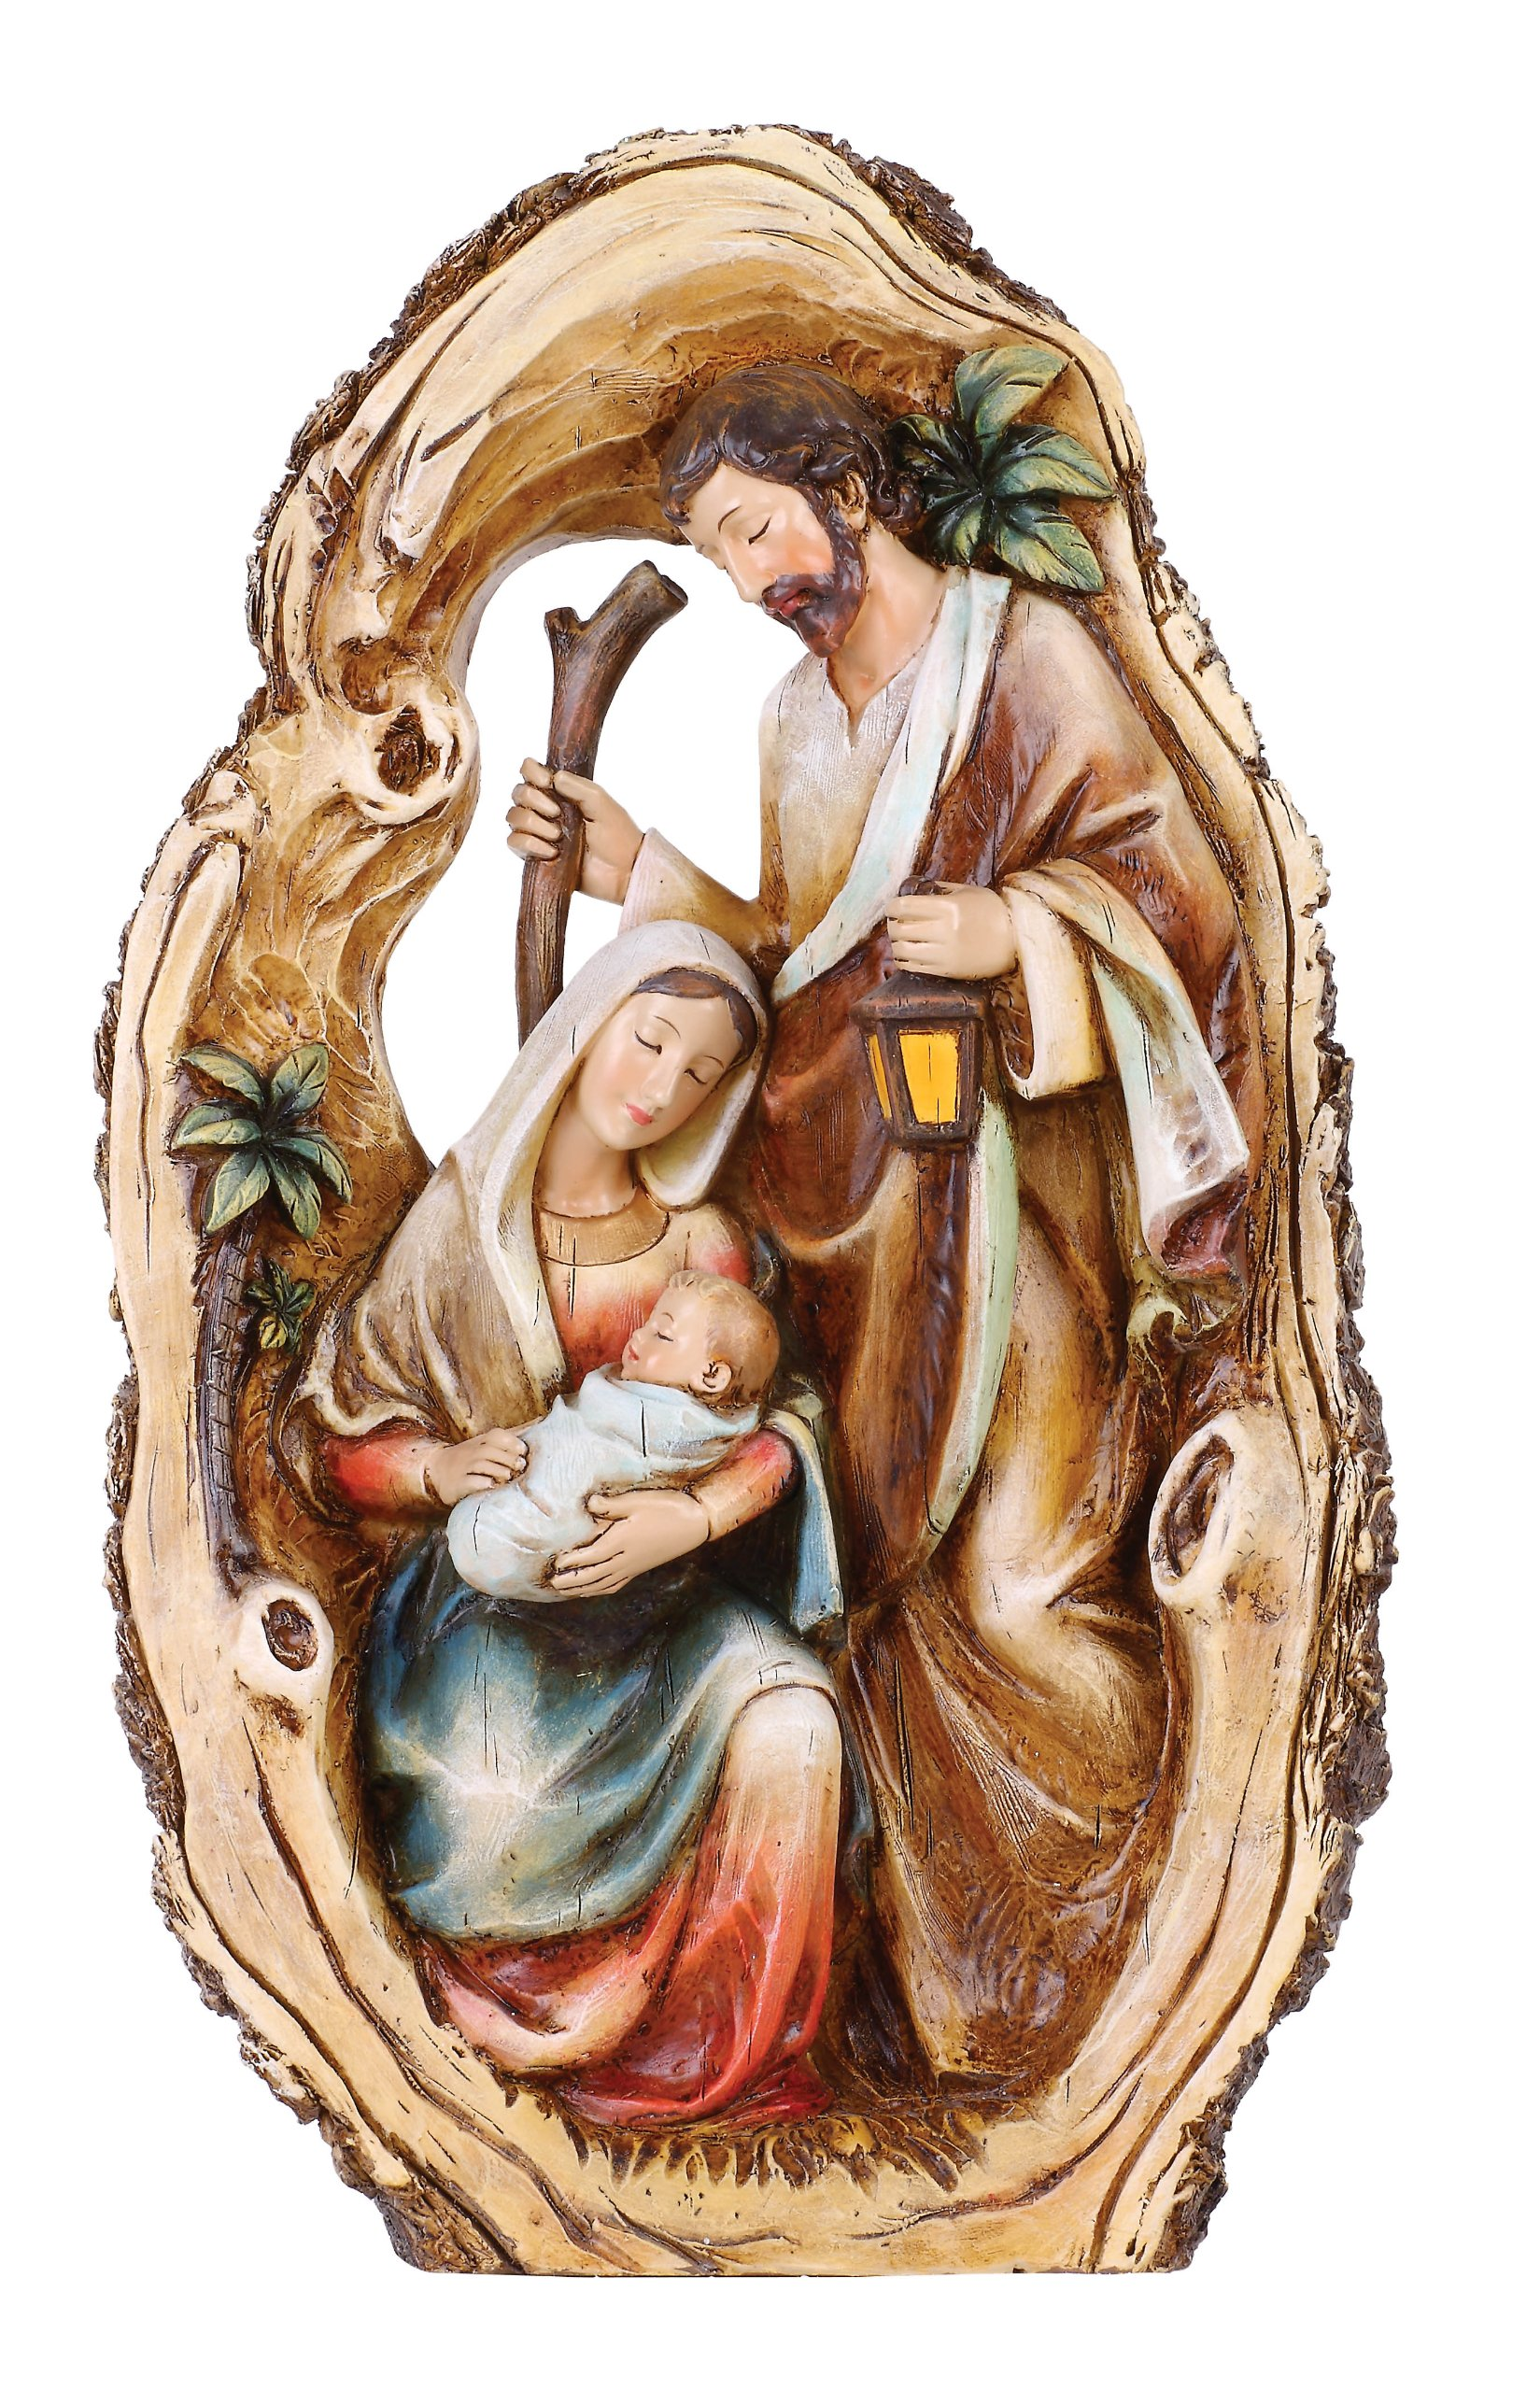 Joseph's Studio by Roman Holy Family in Log Sculpture, 10-1/4-Inch